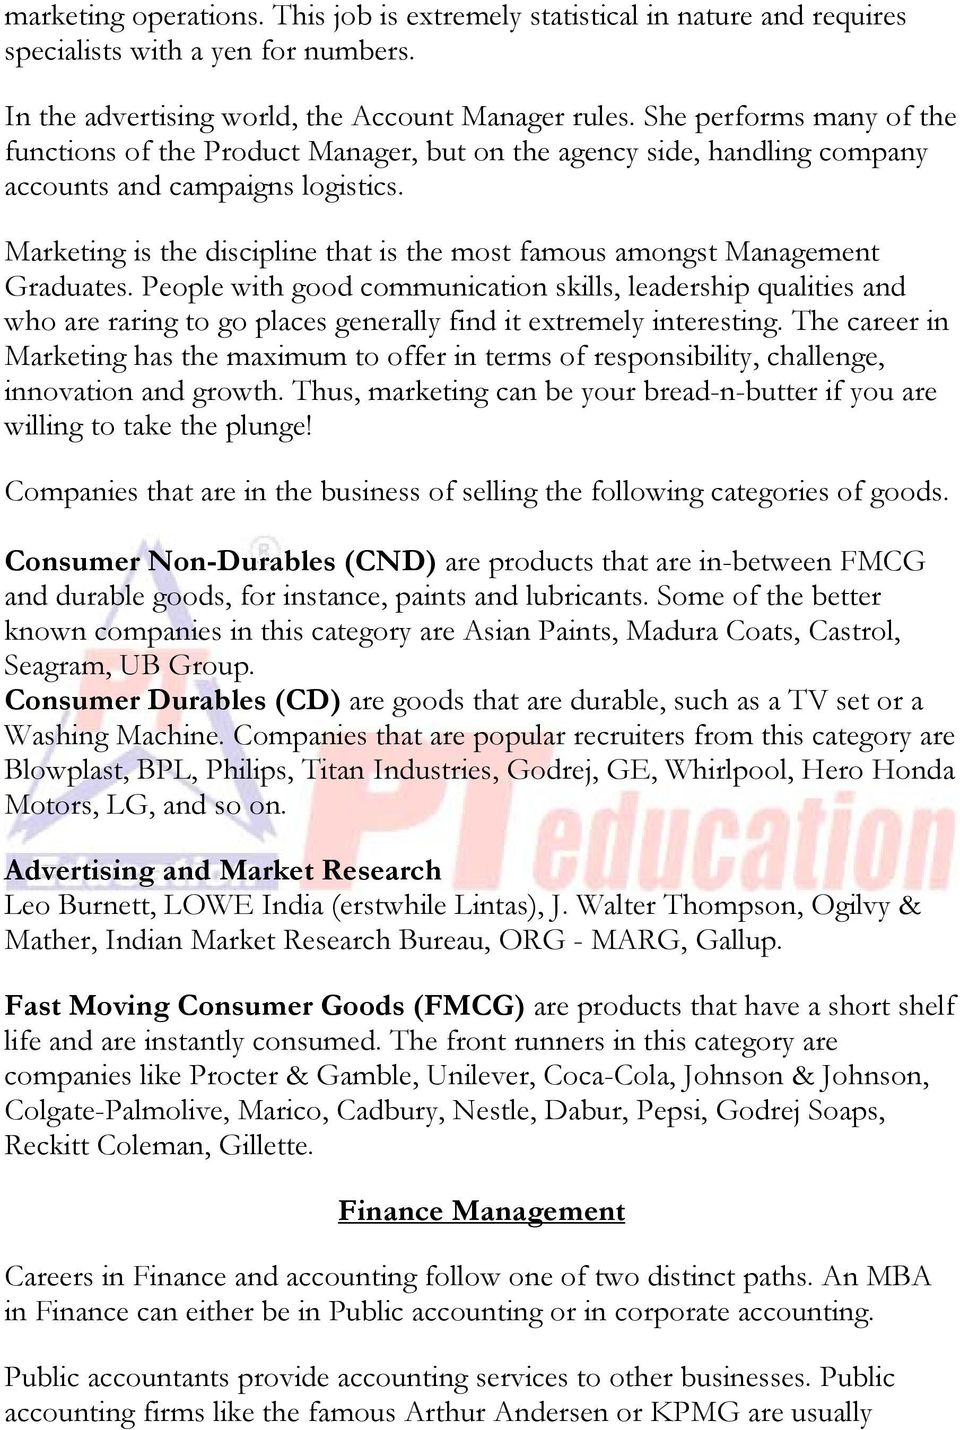 Marketing is the discipline that is the most famous amongst Management Graduates.